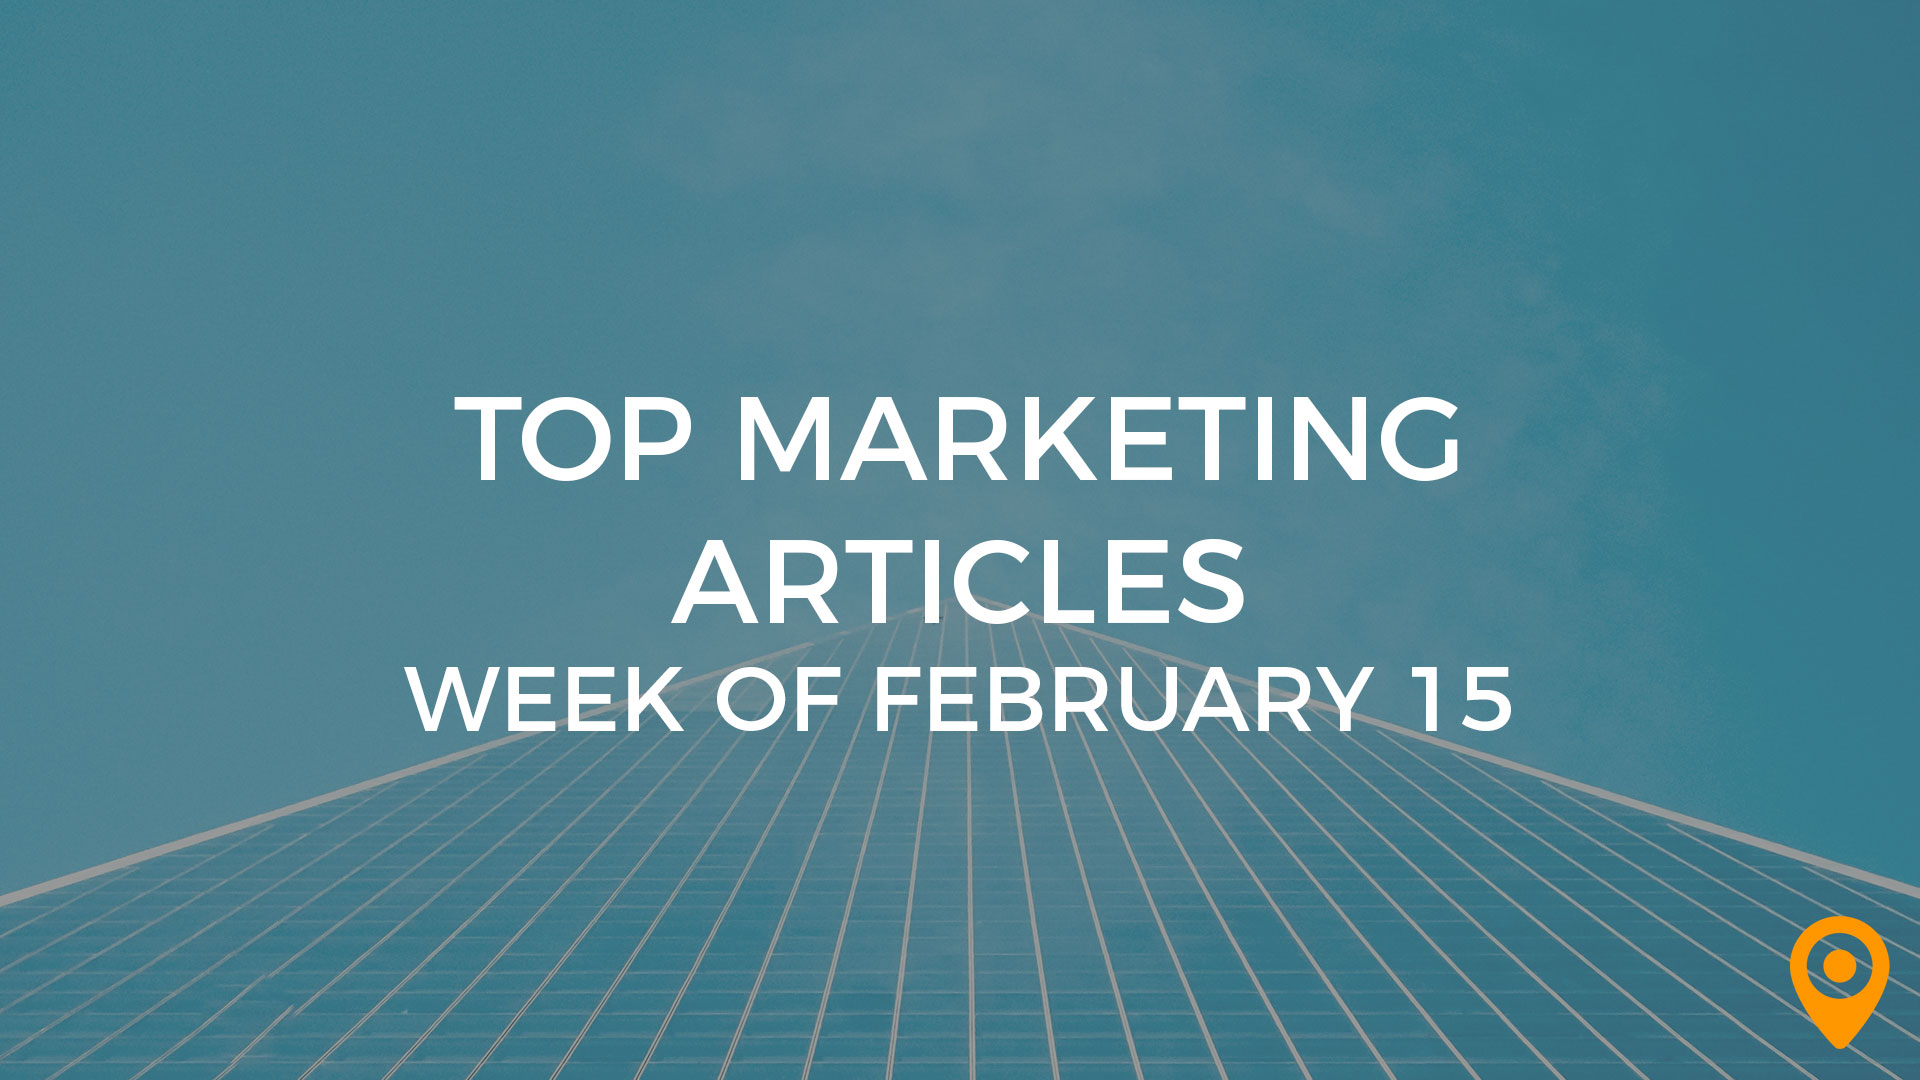 Top Marketing Articles Week of Feb 15